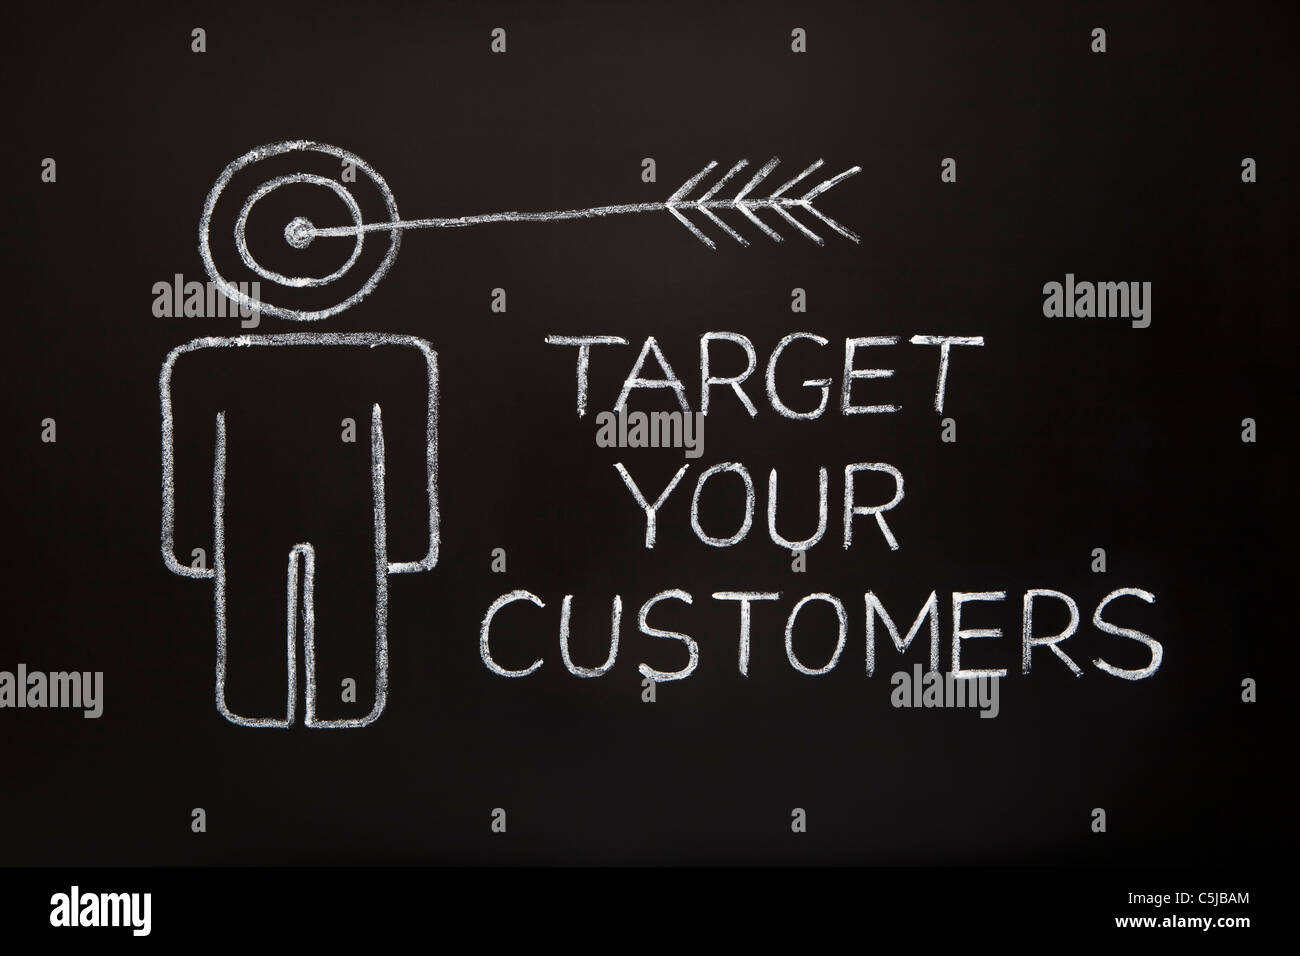 'Target your customers' concept made with white chalk on a blackboard. - Stock Image